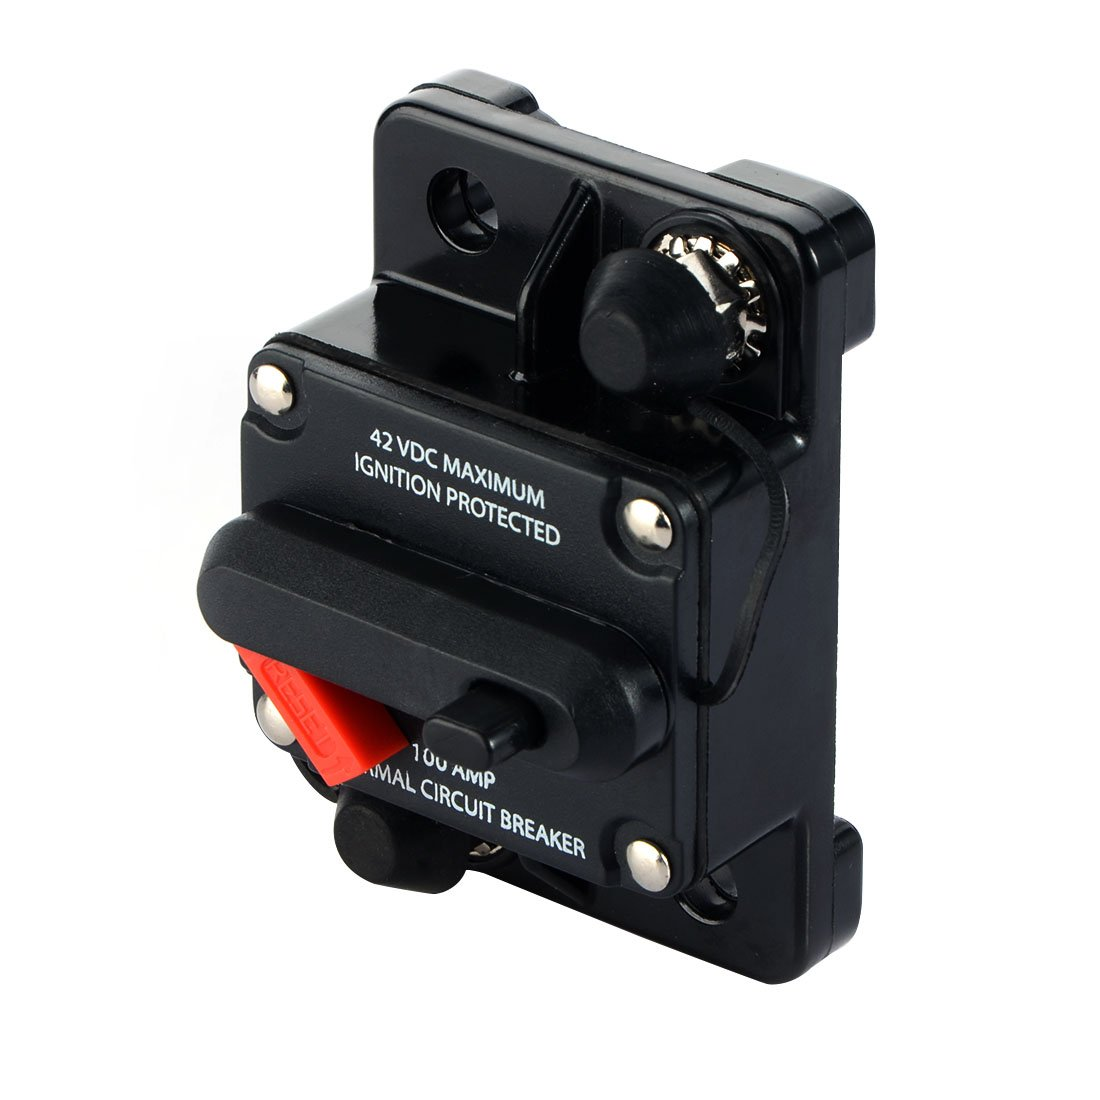 50 Amp Waterproof Car Auto Circuit Breaker Fuse Trolling with Manual Reset 12V-42V DC MeiBoAll